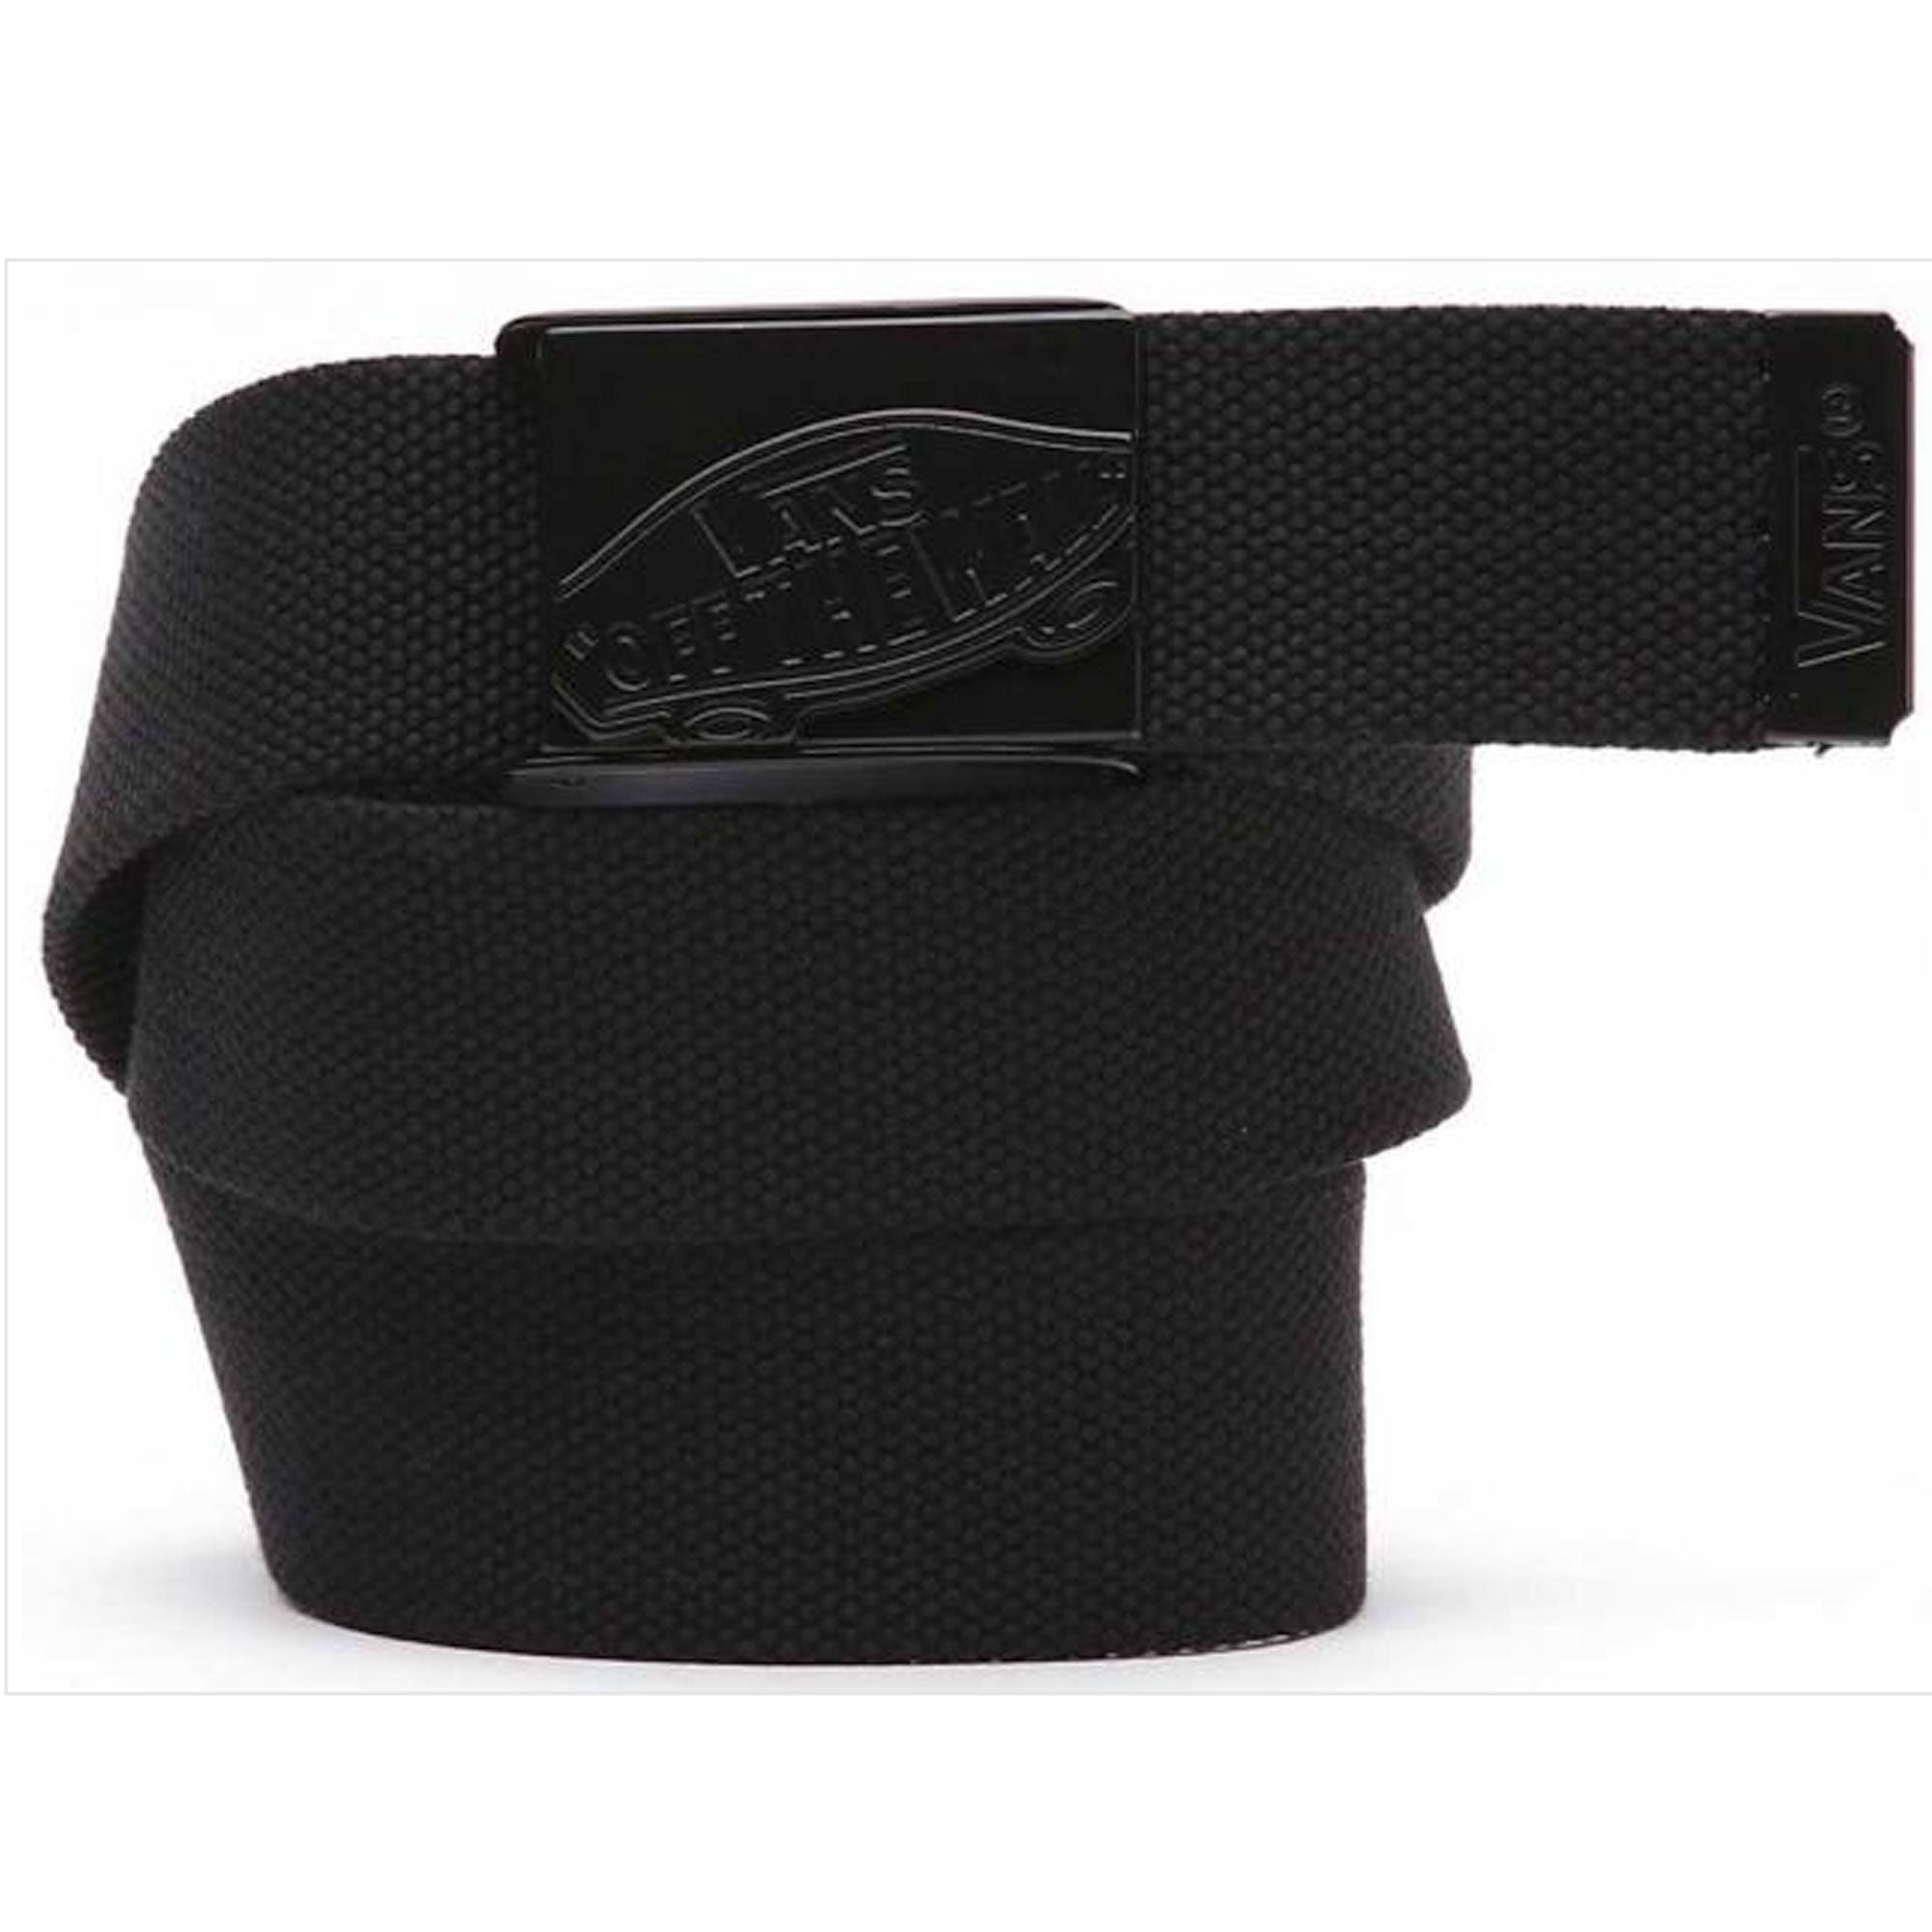 Vans Conductor Web II Men's Belt